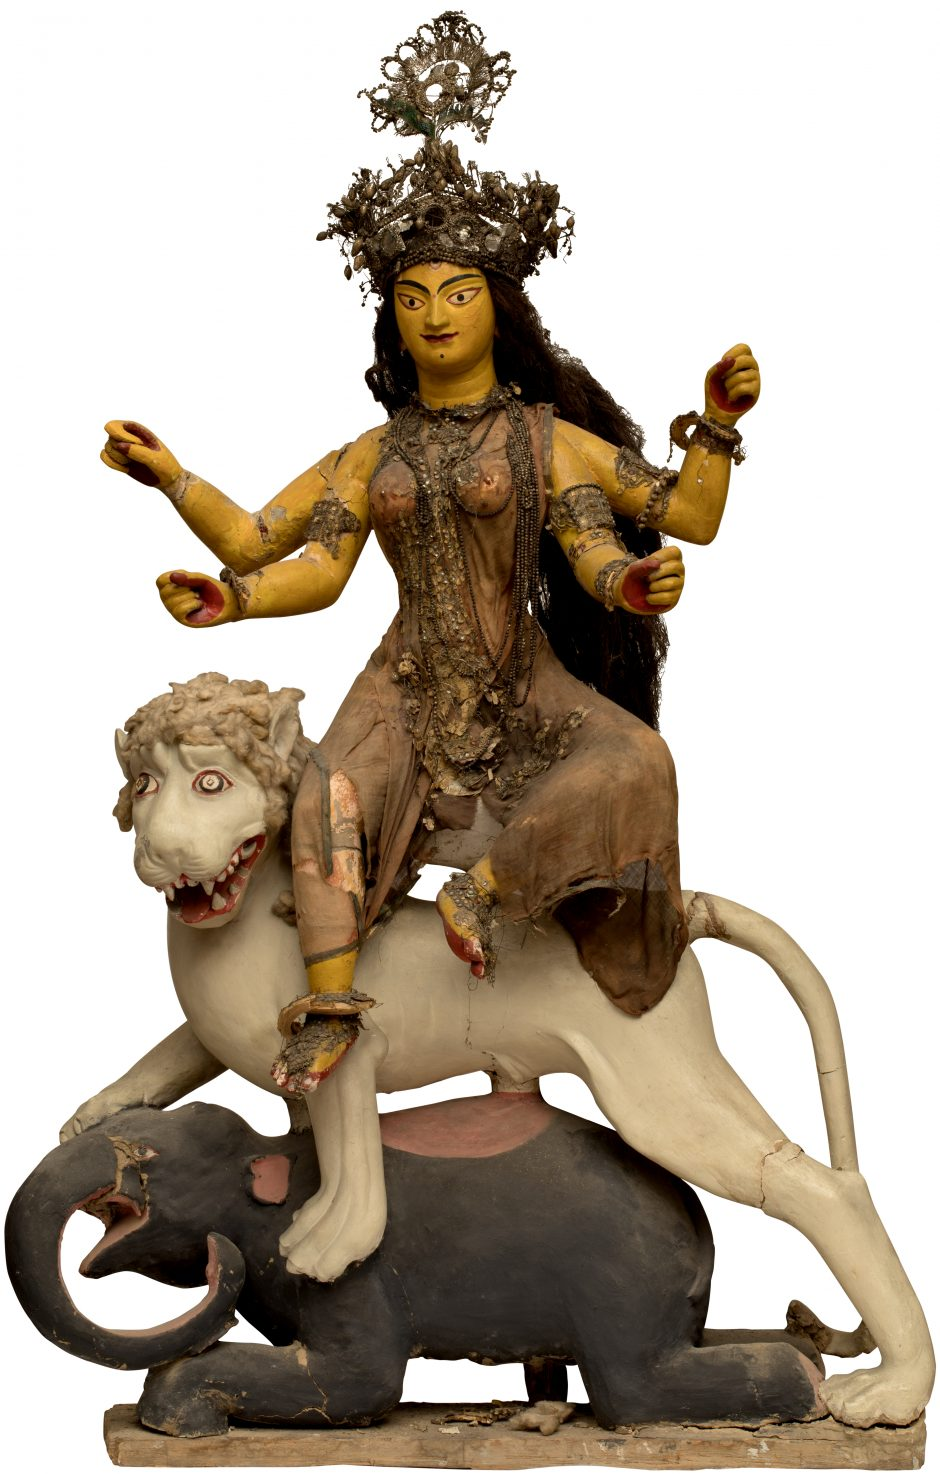 Figure of the goddess Durga with four arms sitting on a lion and an elephant